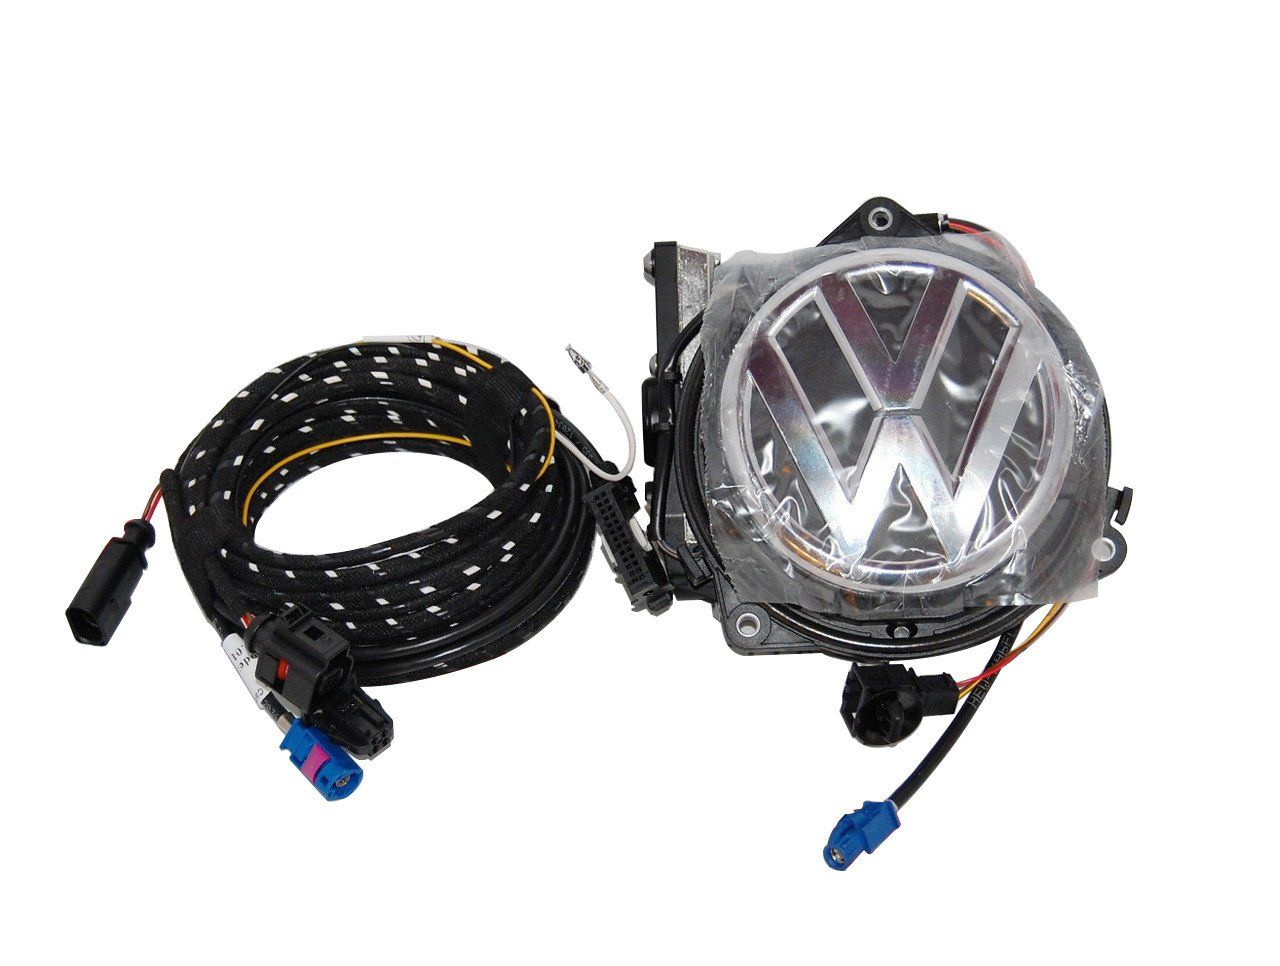 Volkswagen EOS Emblem Rear View Camera Kit | Products